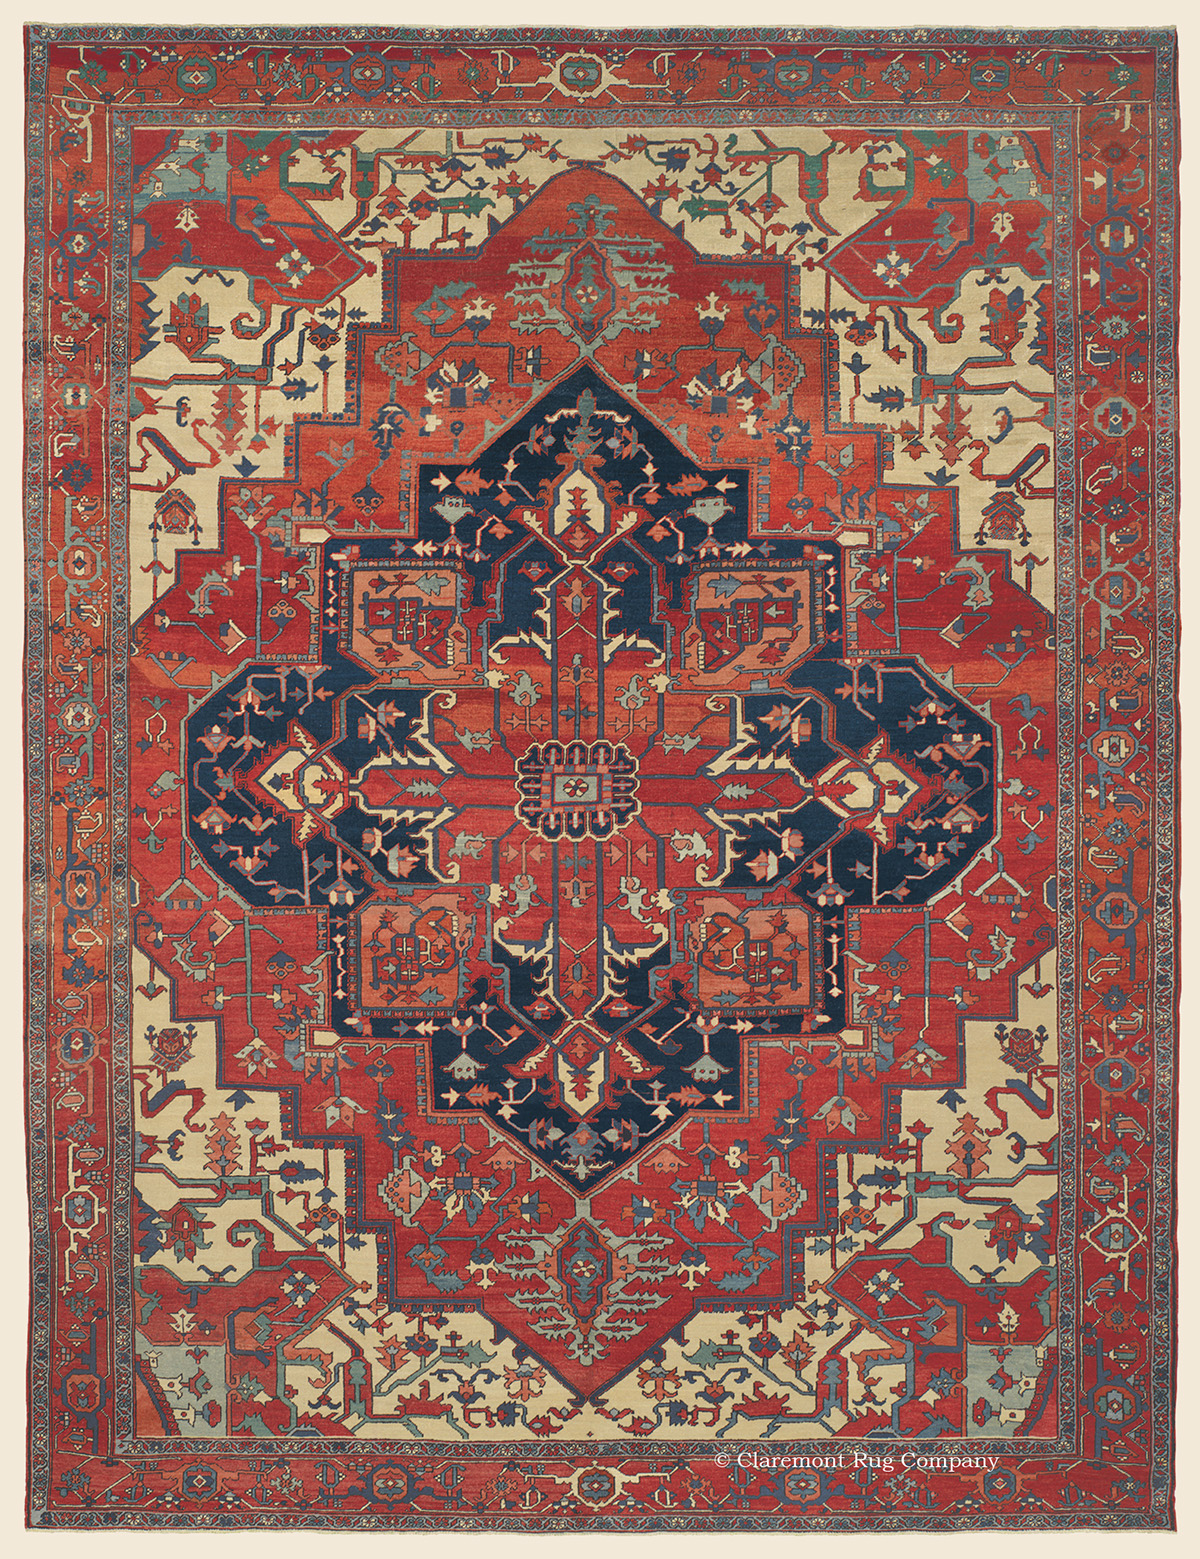 10 Kitchen And Home Decor Items Every 20 Something Needs: SERAPI, Northwest Persian Antique Rug